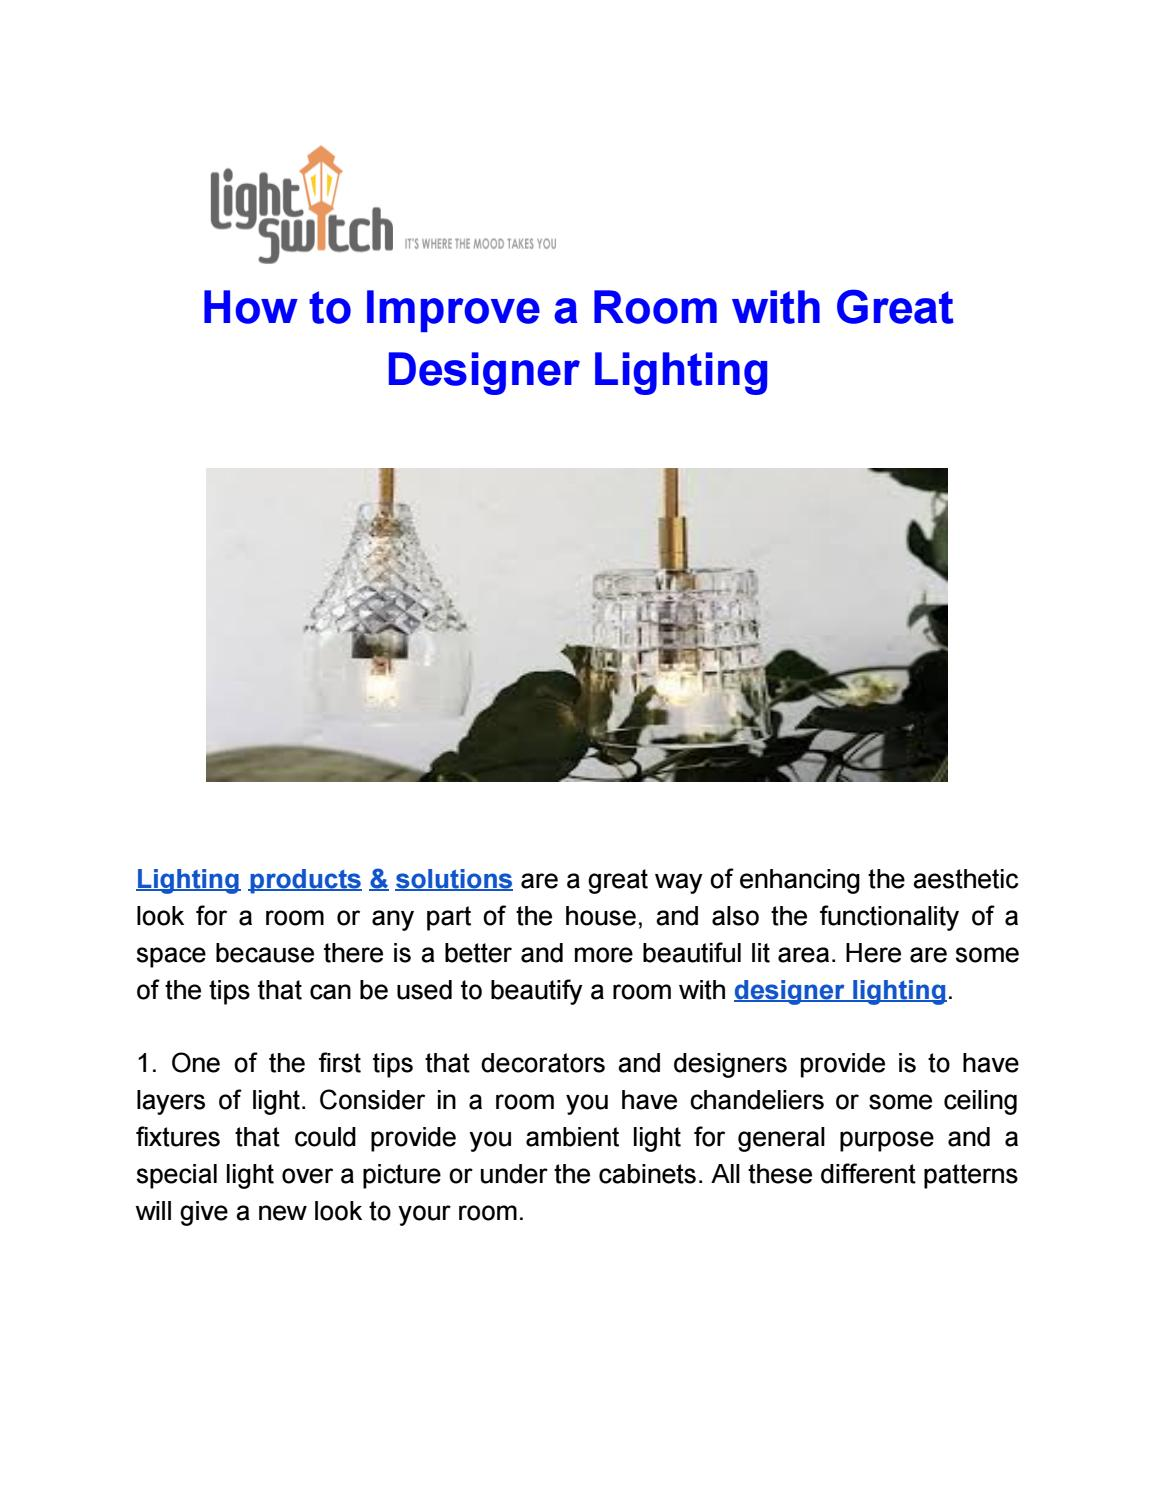 Designer Lighting By Graeme Clarke